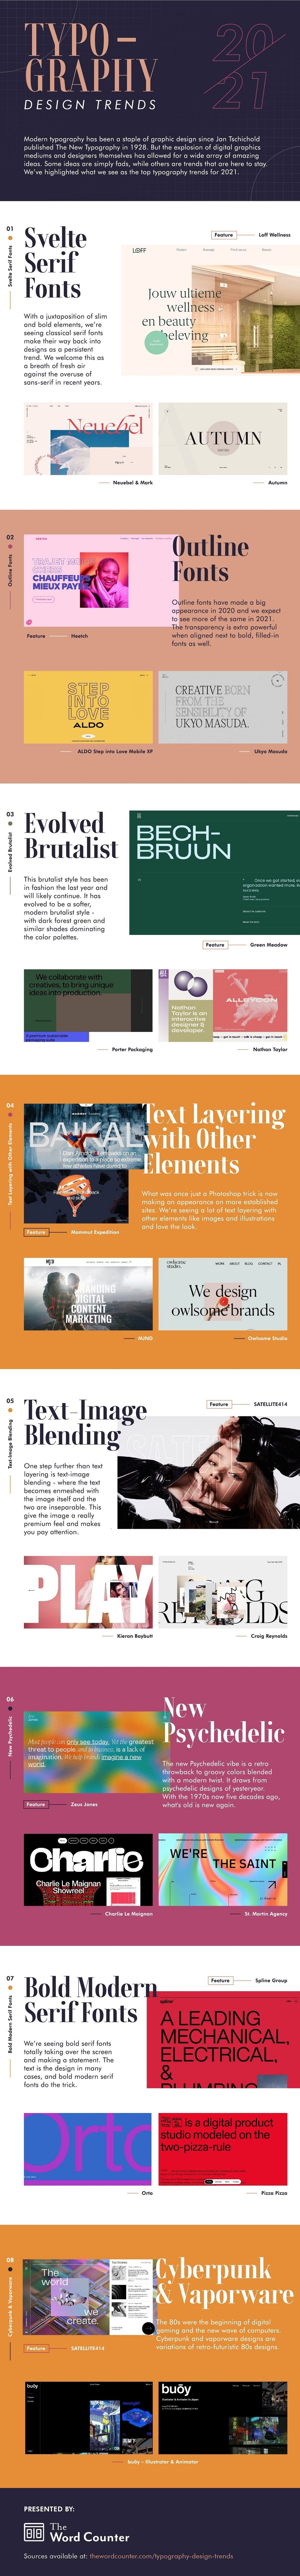 Typography Design Trends 2021 #infographic